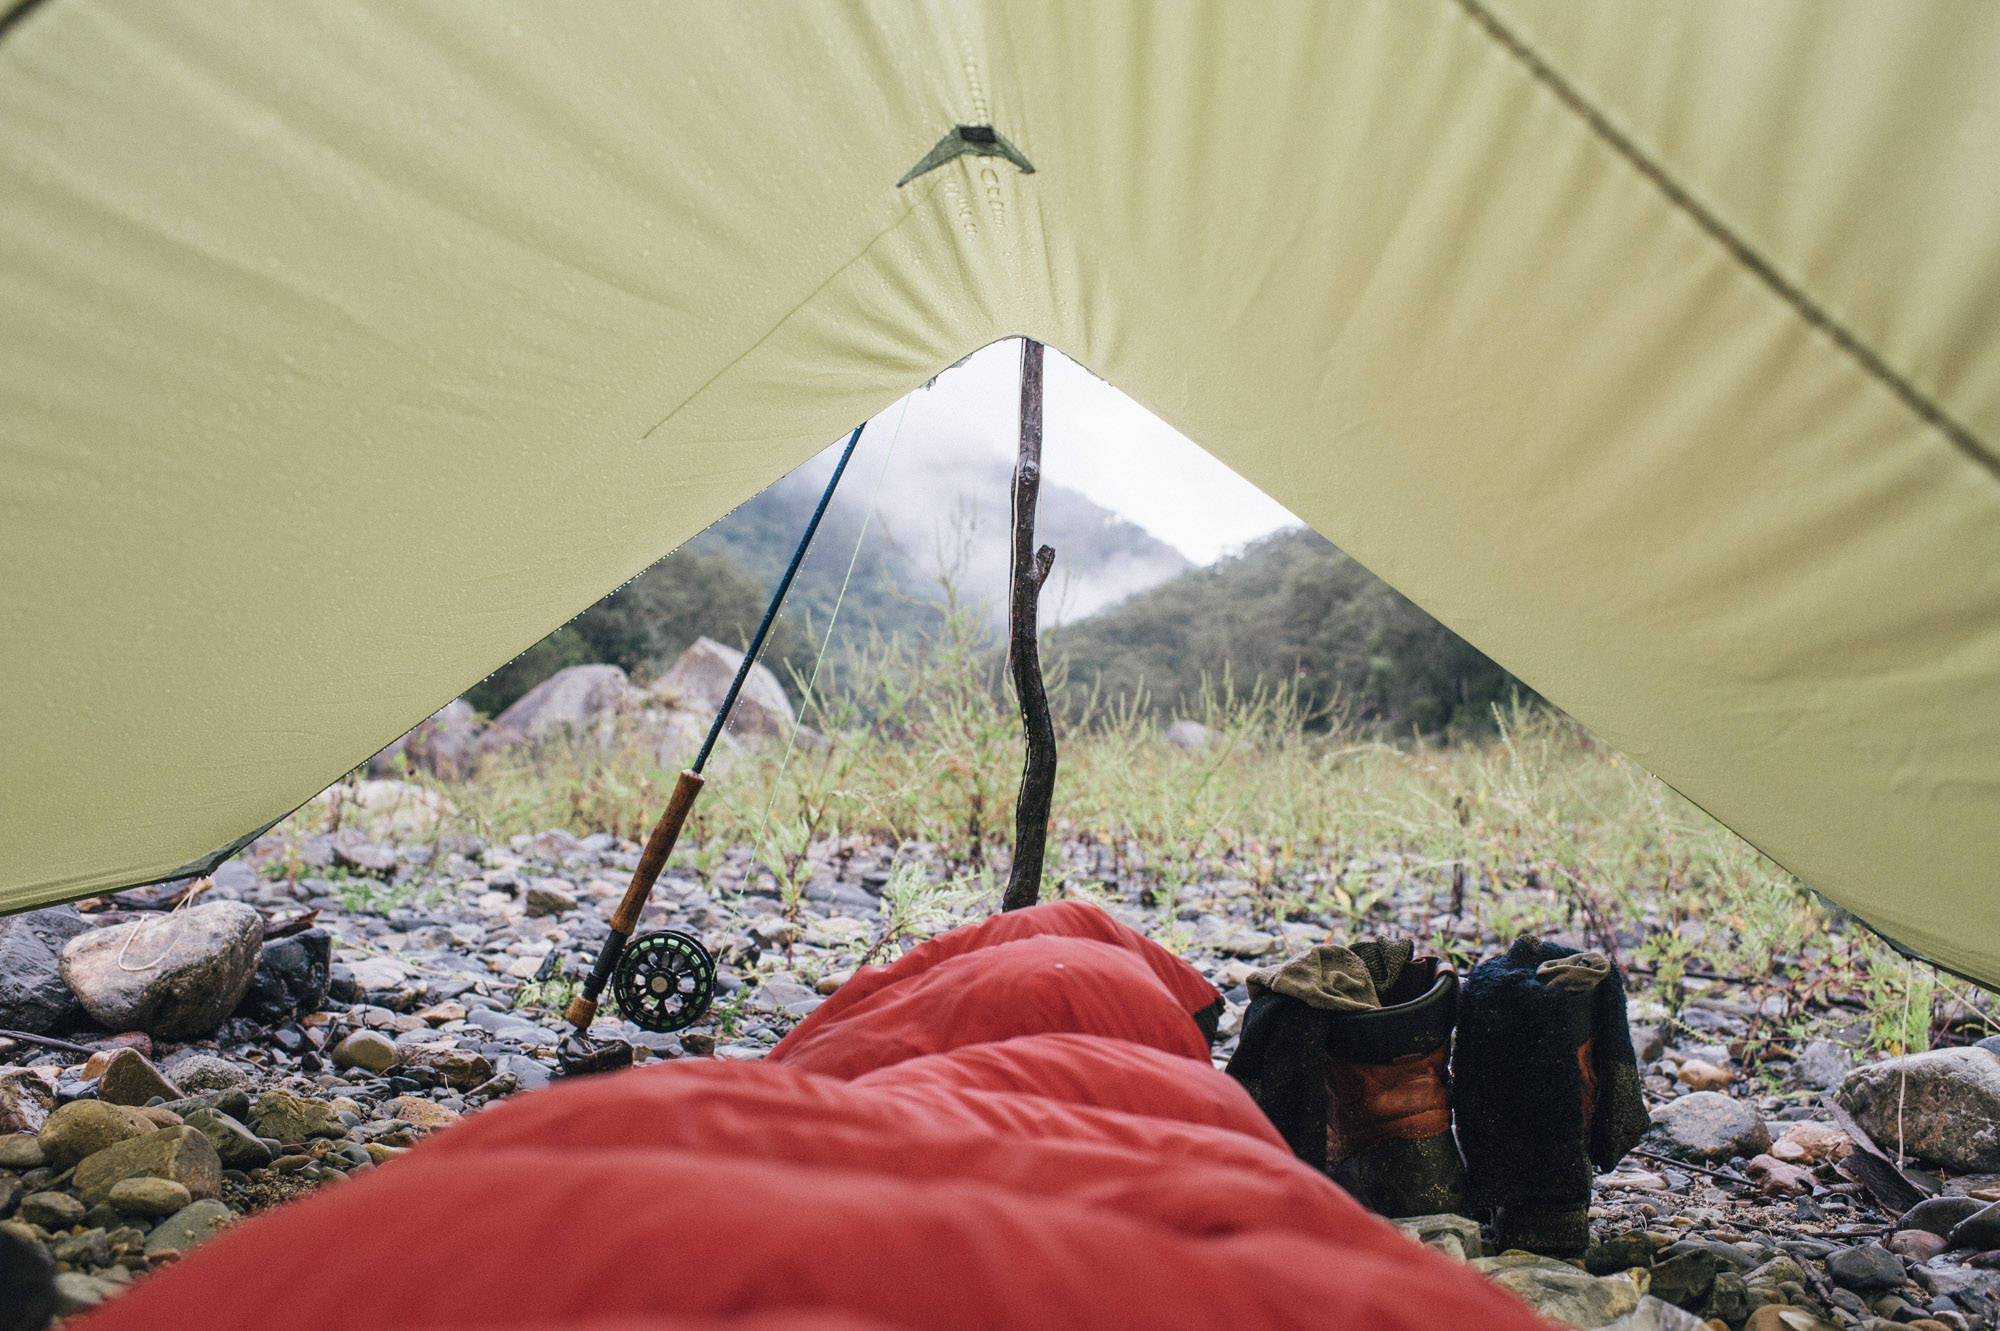 Jono Winnel has an eye for what makes a good photo, a fact that is well illustrated here. Like the simplicity of sleeping under a tarp, this shot is unpretentious, doesn't feel overwrought and yet manages to capture the essence of a day in the backcountry about to begin.